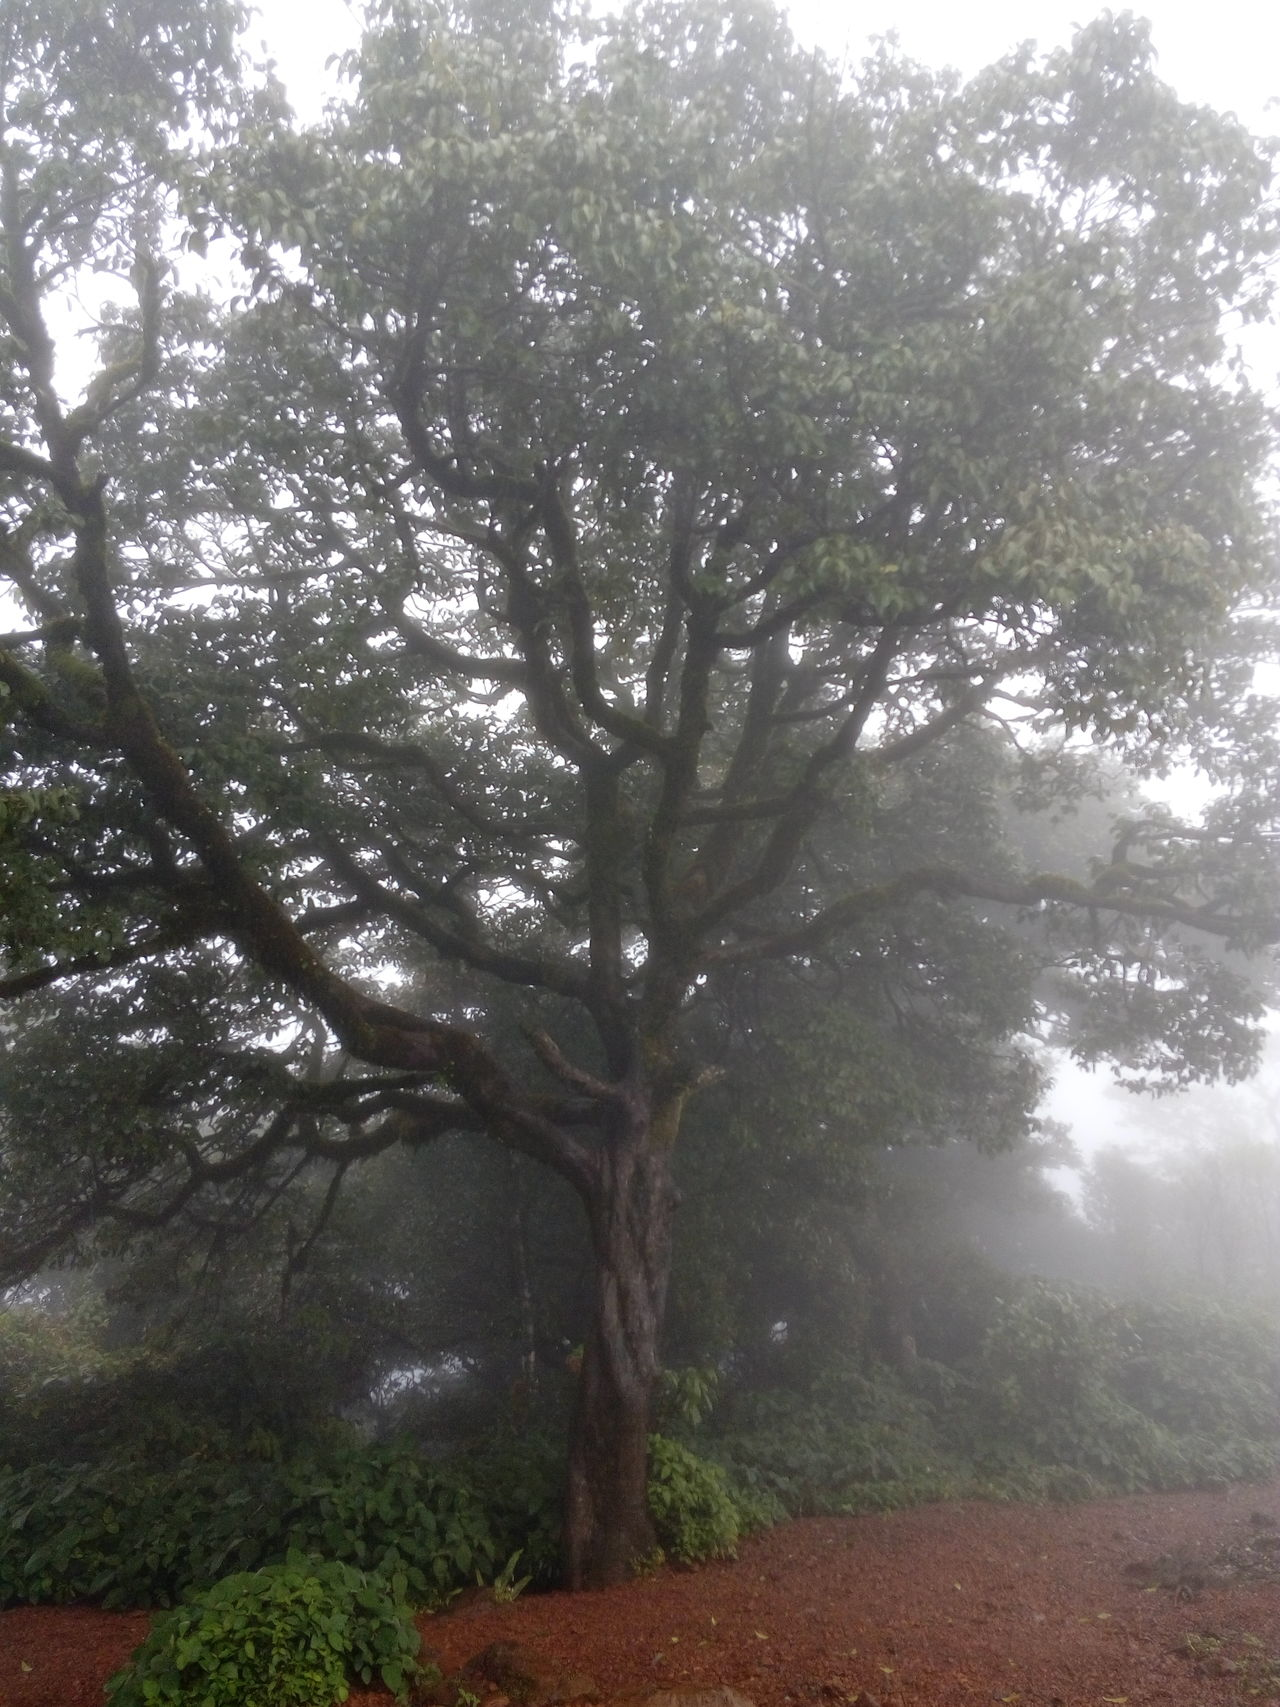 The Purist (no Edit, No Filter) Mobile Photography From My Point Of View Not So Clear Eyeem India Eyeem Photography EyeEm The Best Shots Barely Visible Fog Raining Slightly Kodachadri Hill's Cold Nature EyeEm Best Shots - Nature EyeEm Nature Lover Forest Taking Photos Tree Enchanting India